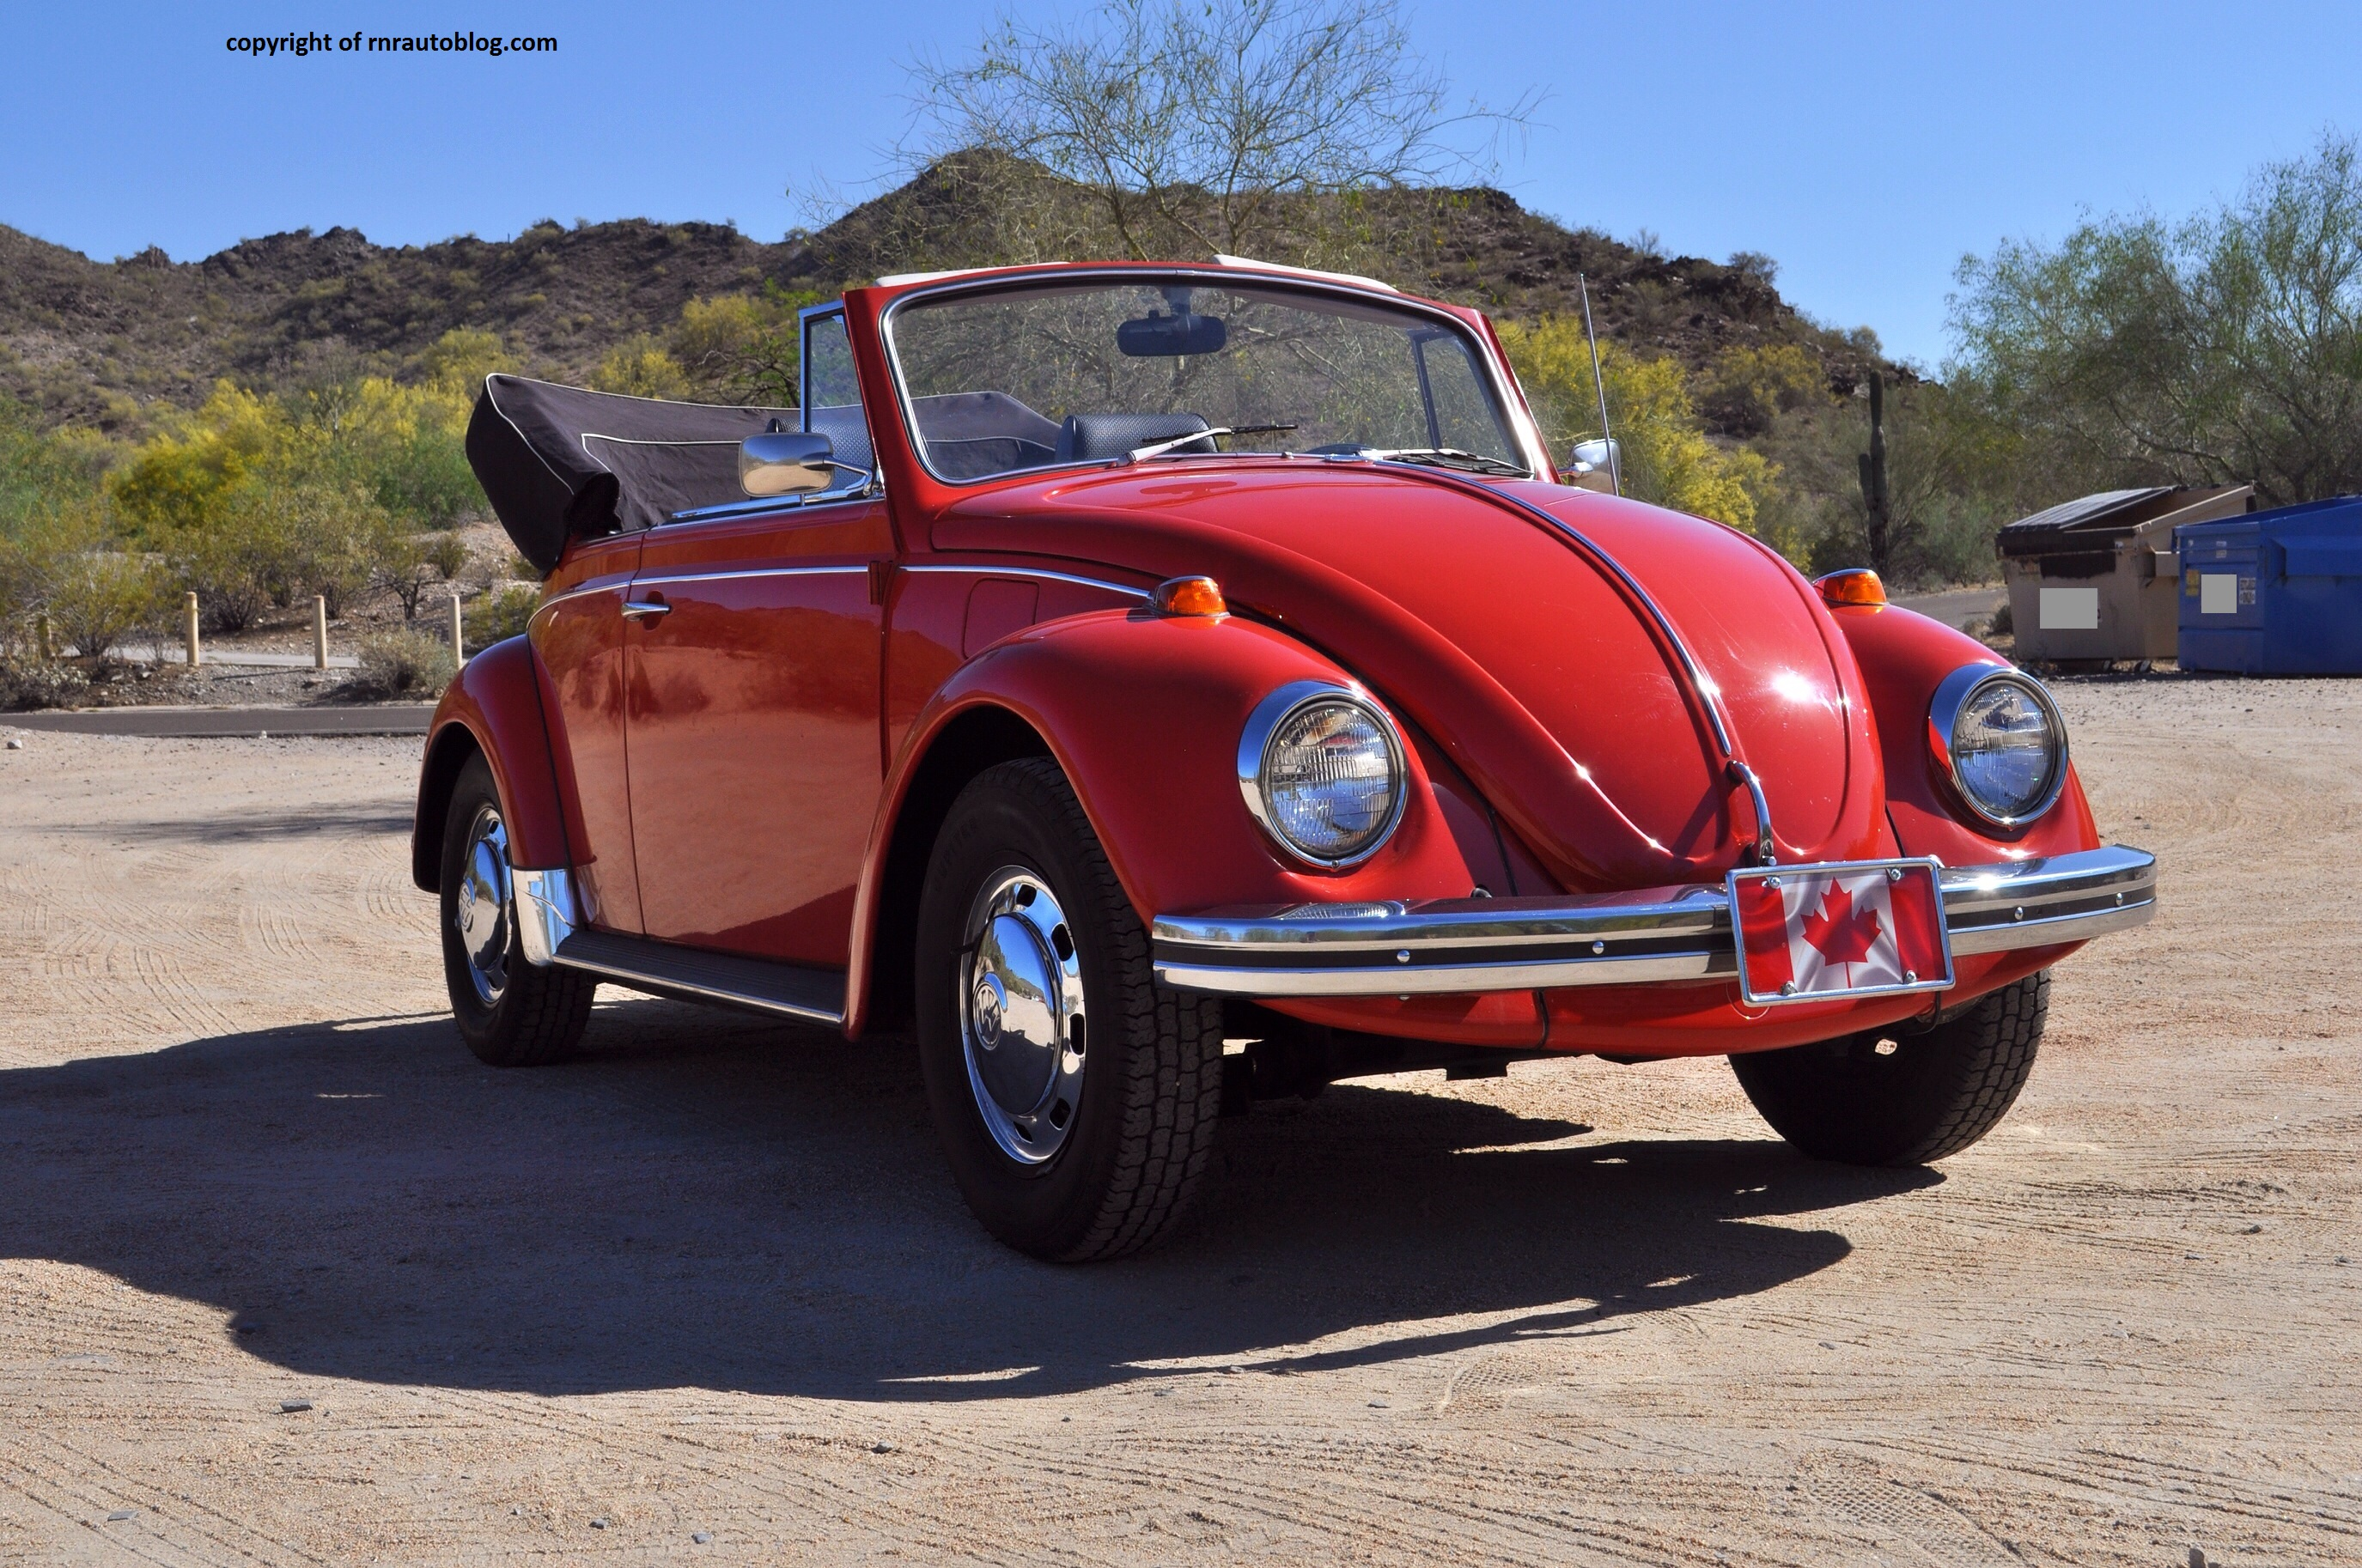 1969 volkswagen beetle convertible review rnr automotive blog. Black Bedroom Furniture Sets. Home Design Ideas